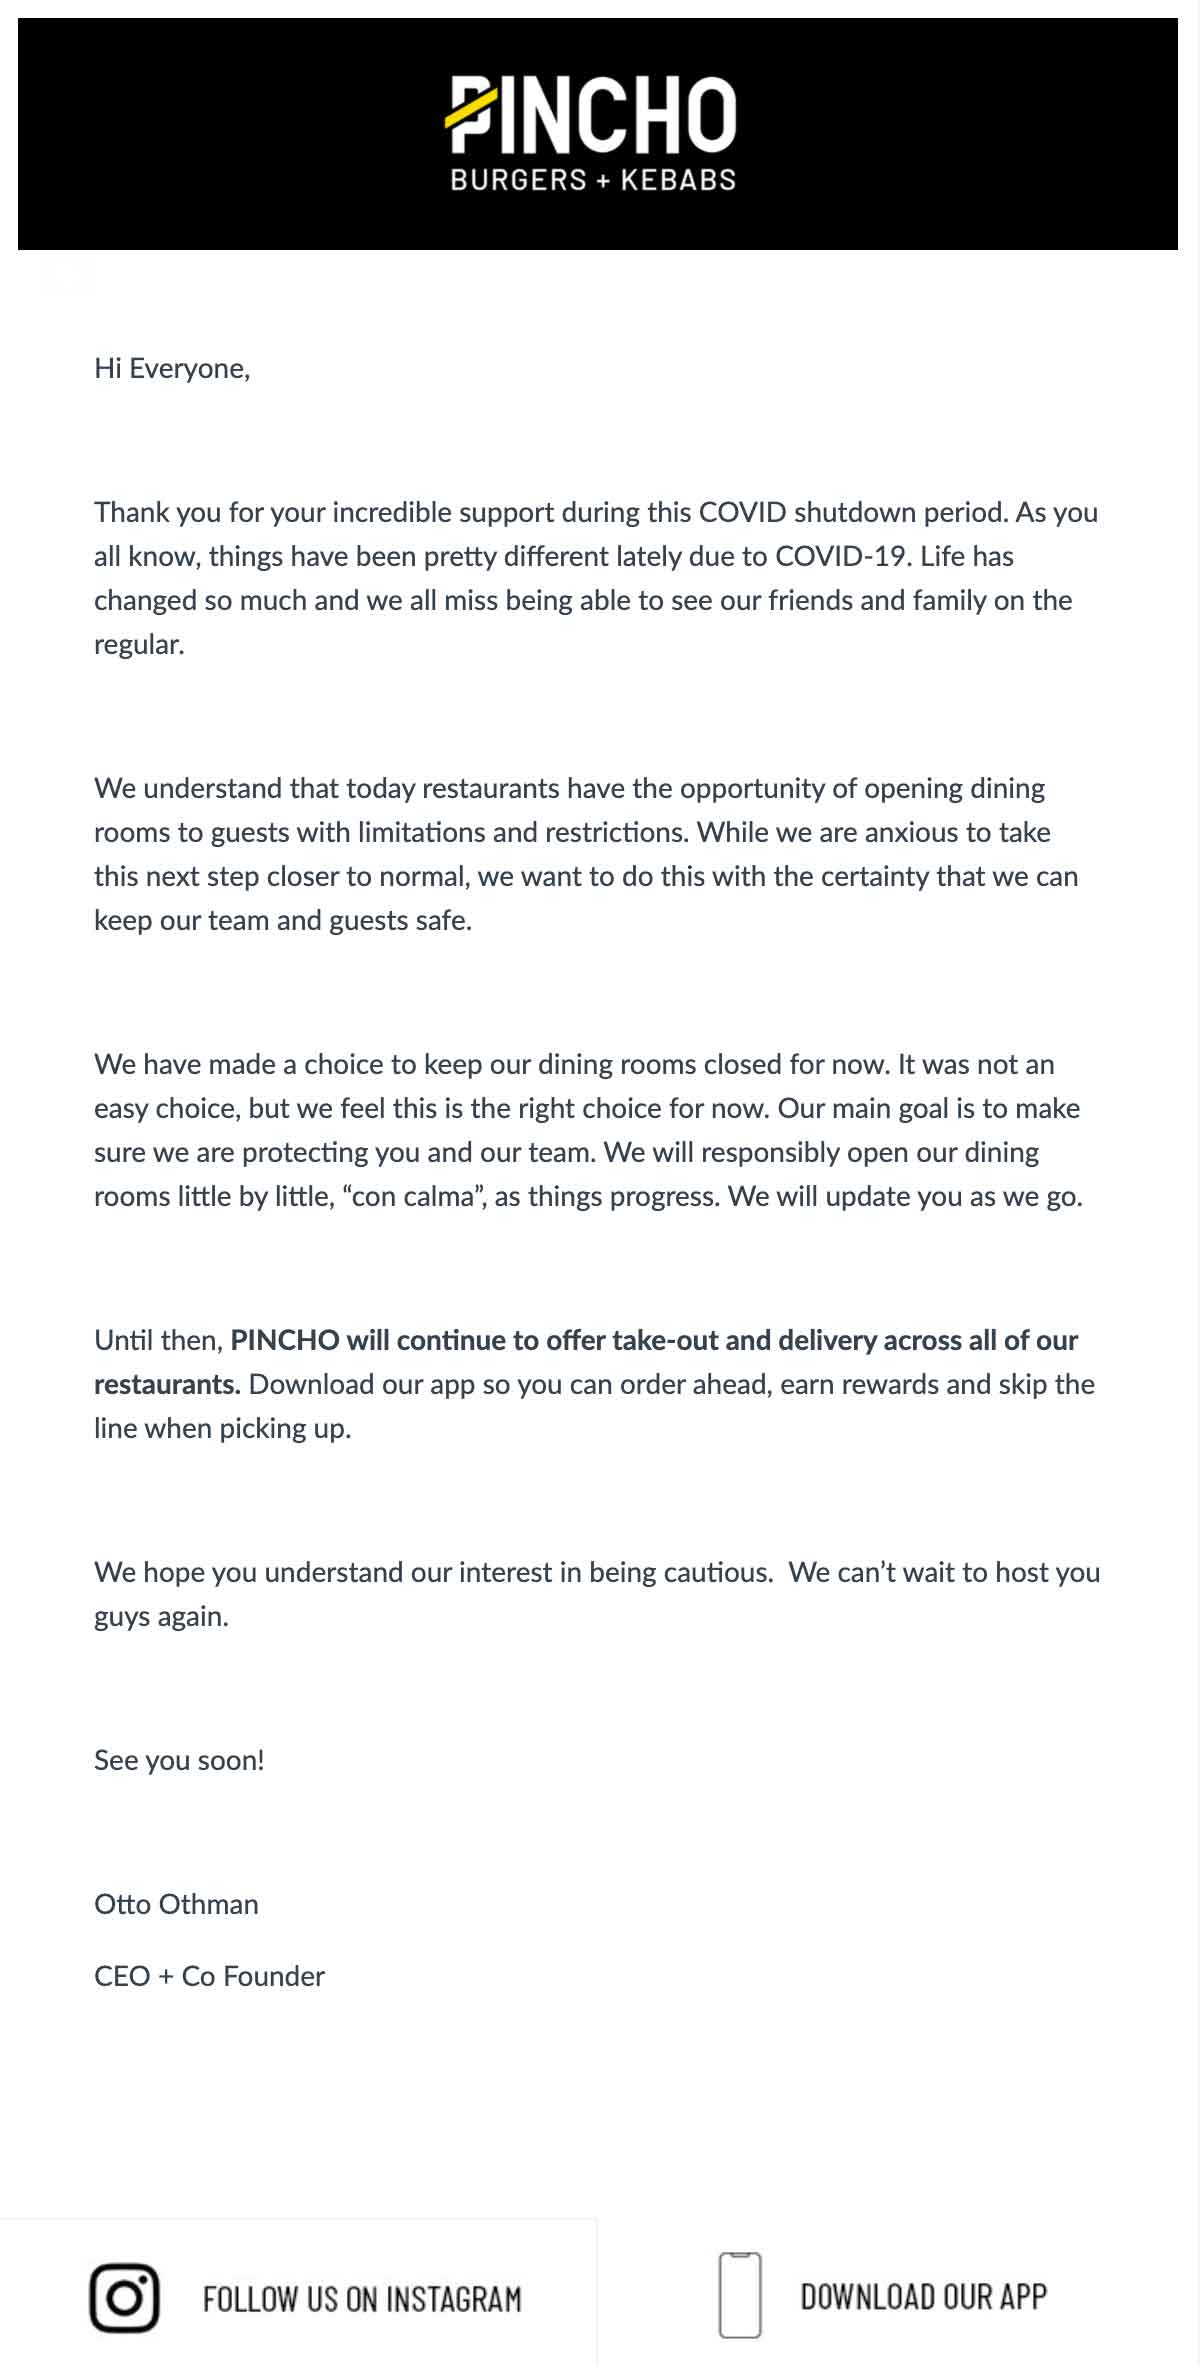 PINCHO: A Letter from our CEO Email